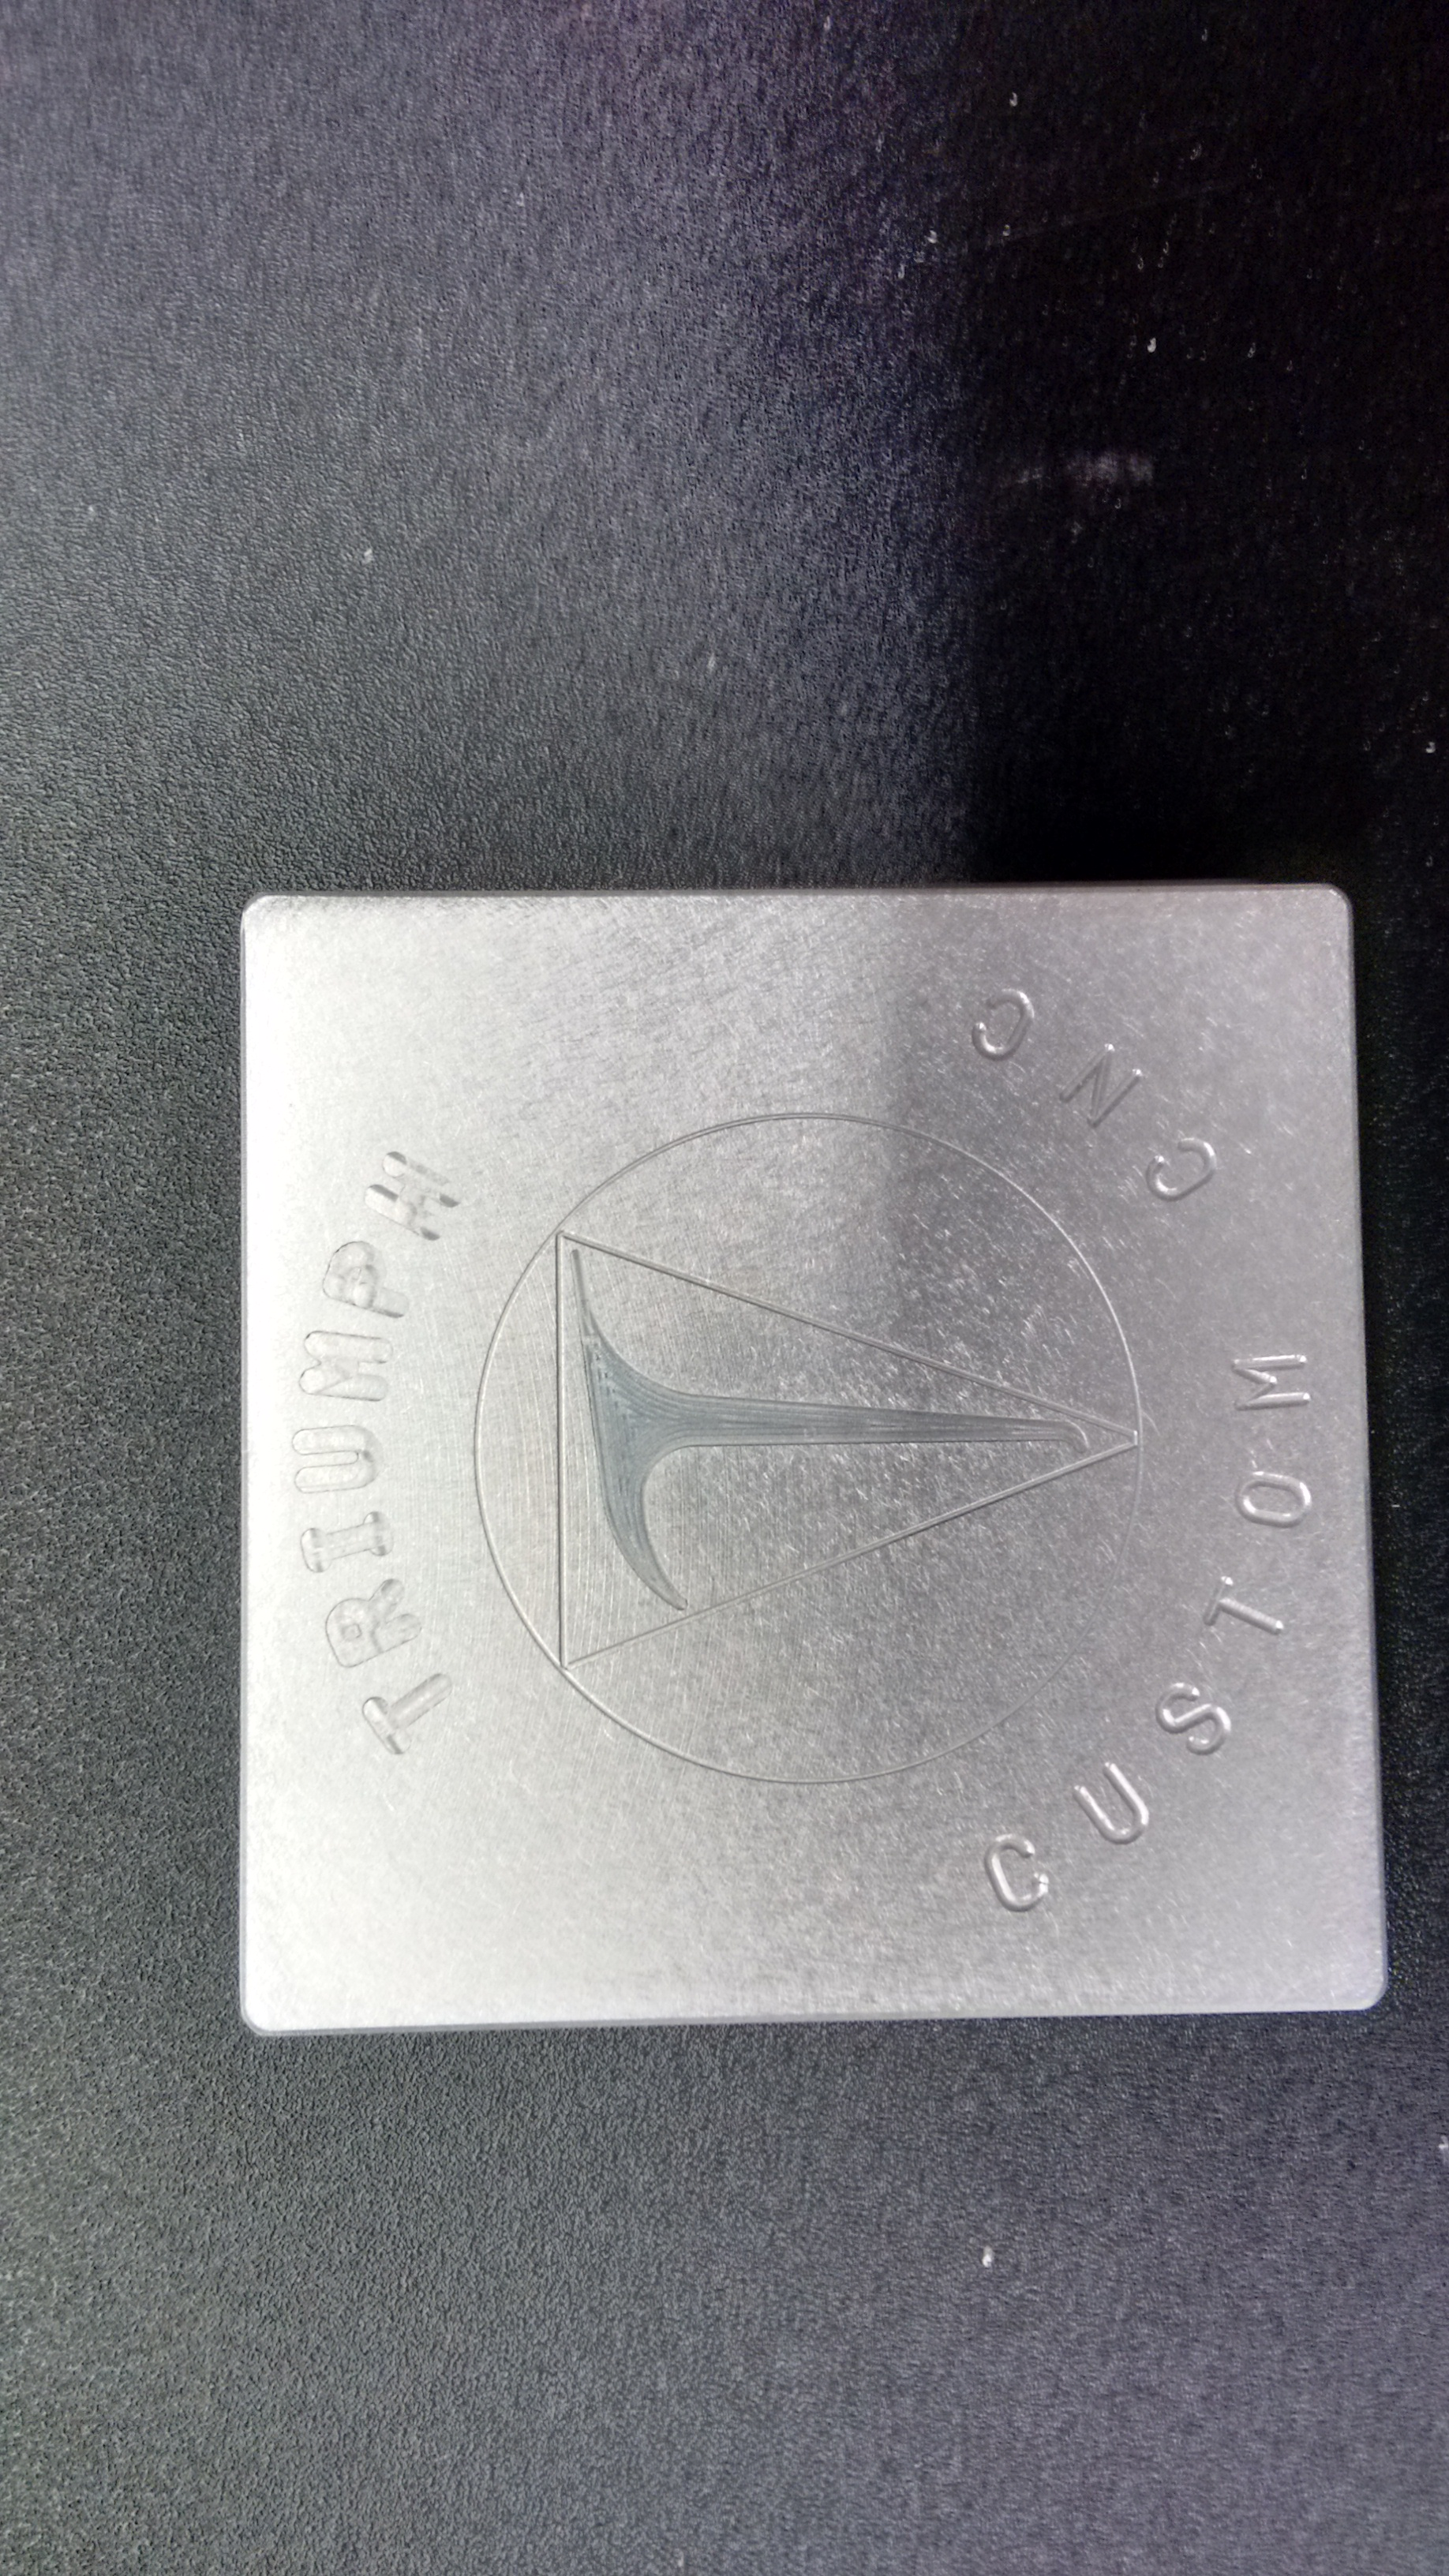 Engraving on Aluminum